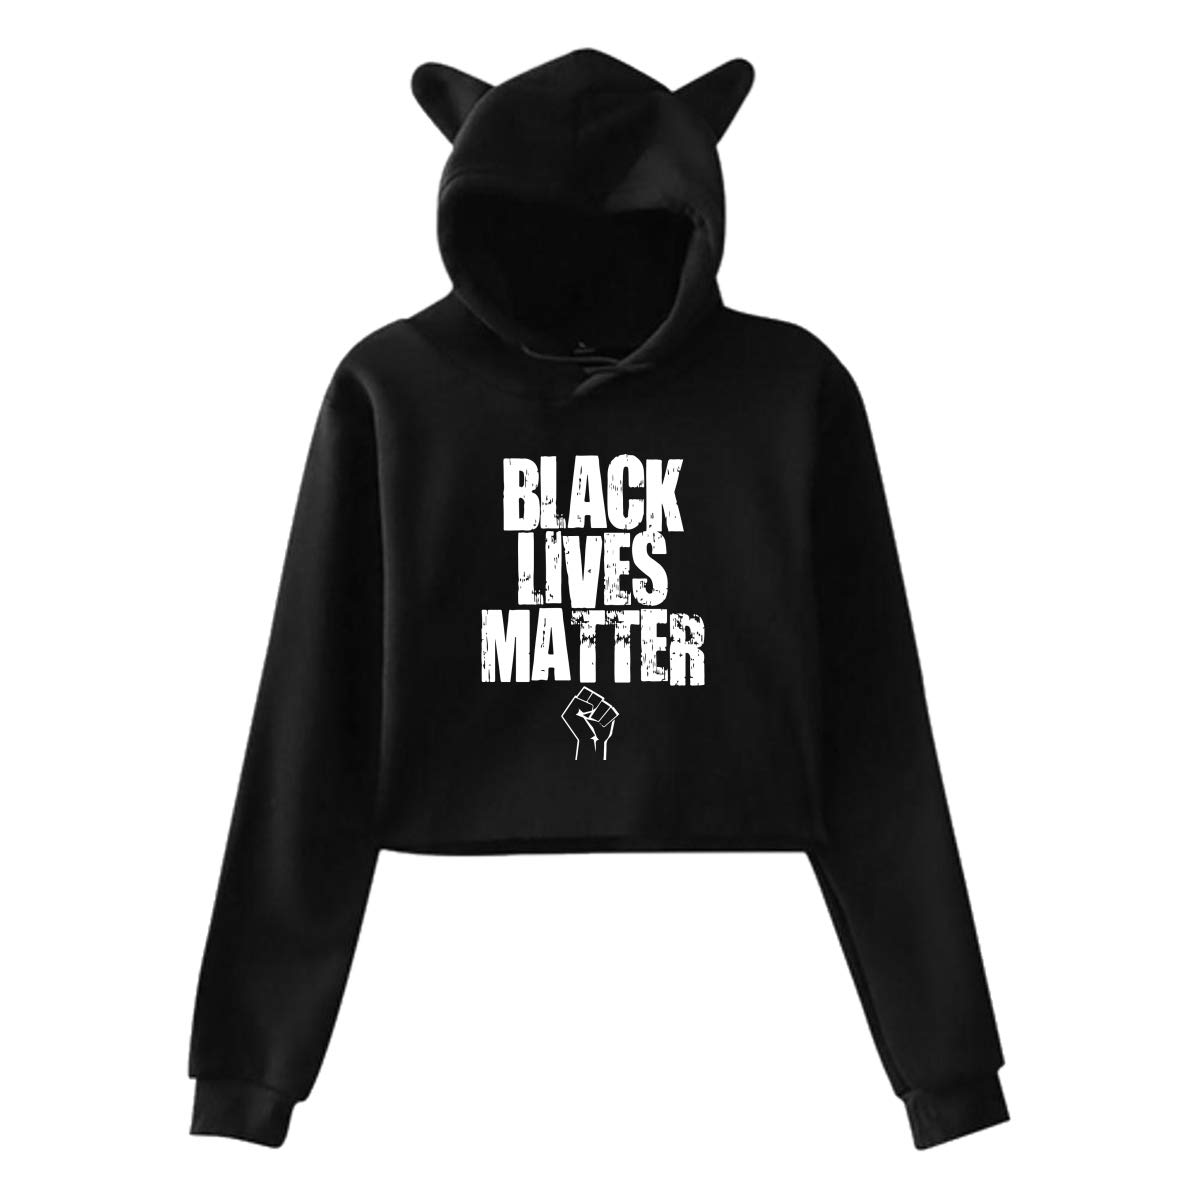 Womens Cat Ear Crop Top Pullover Hoodie Casual Black Lives Matter Long Sleeve Hooded Pullover S-XXL